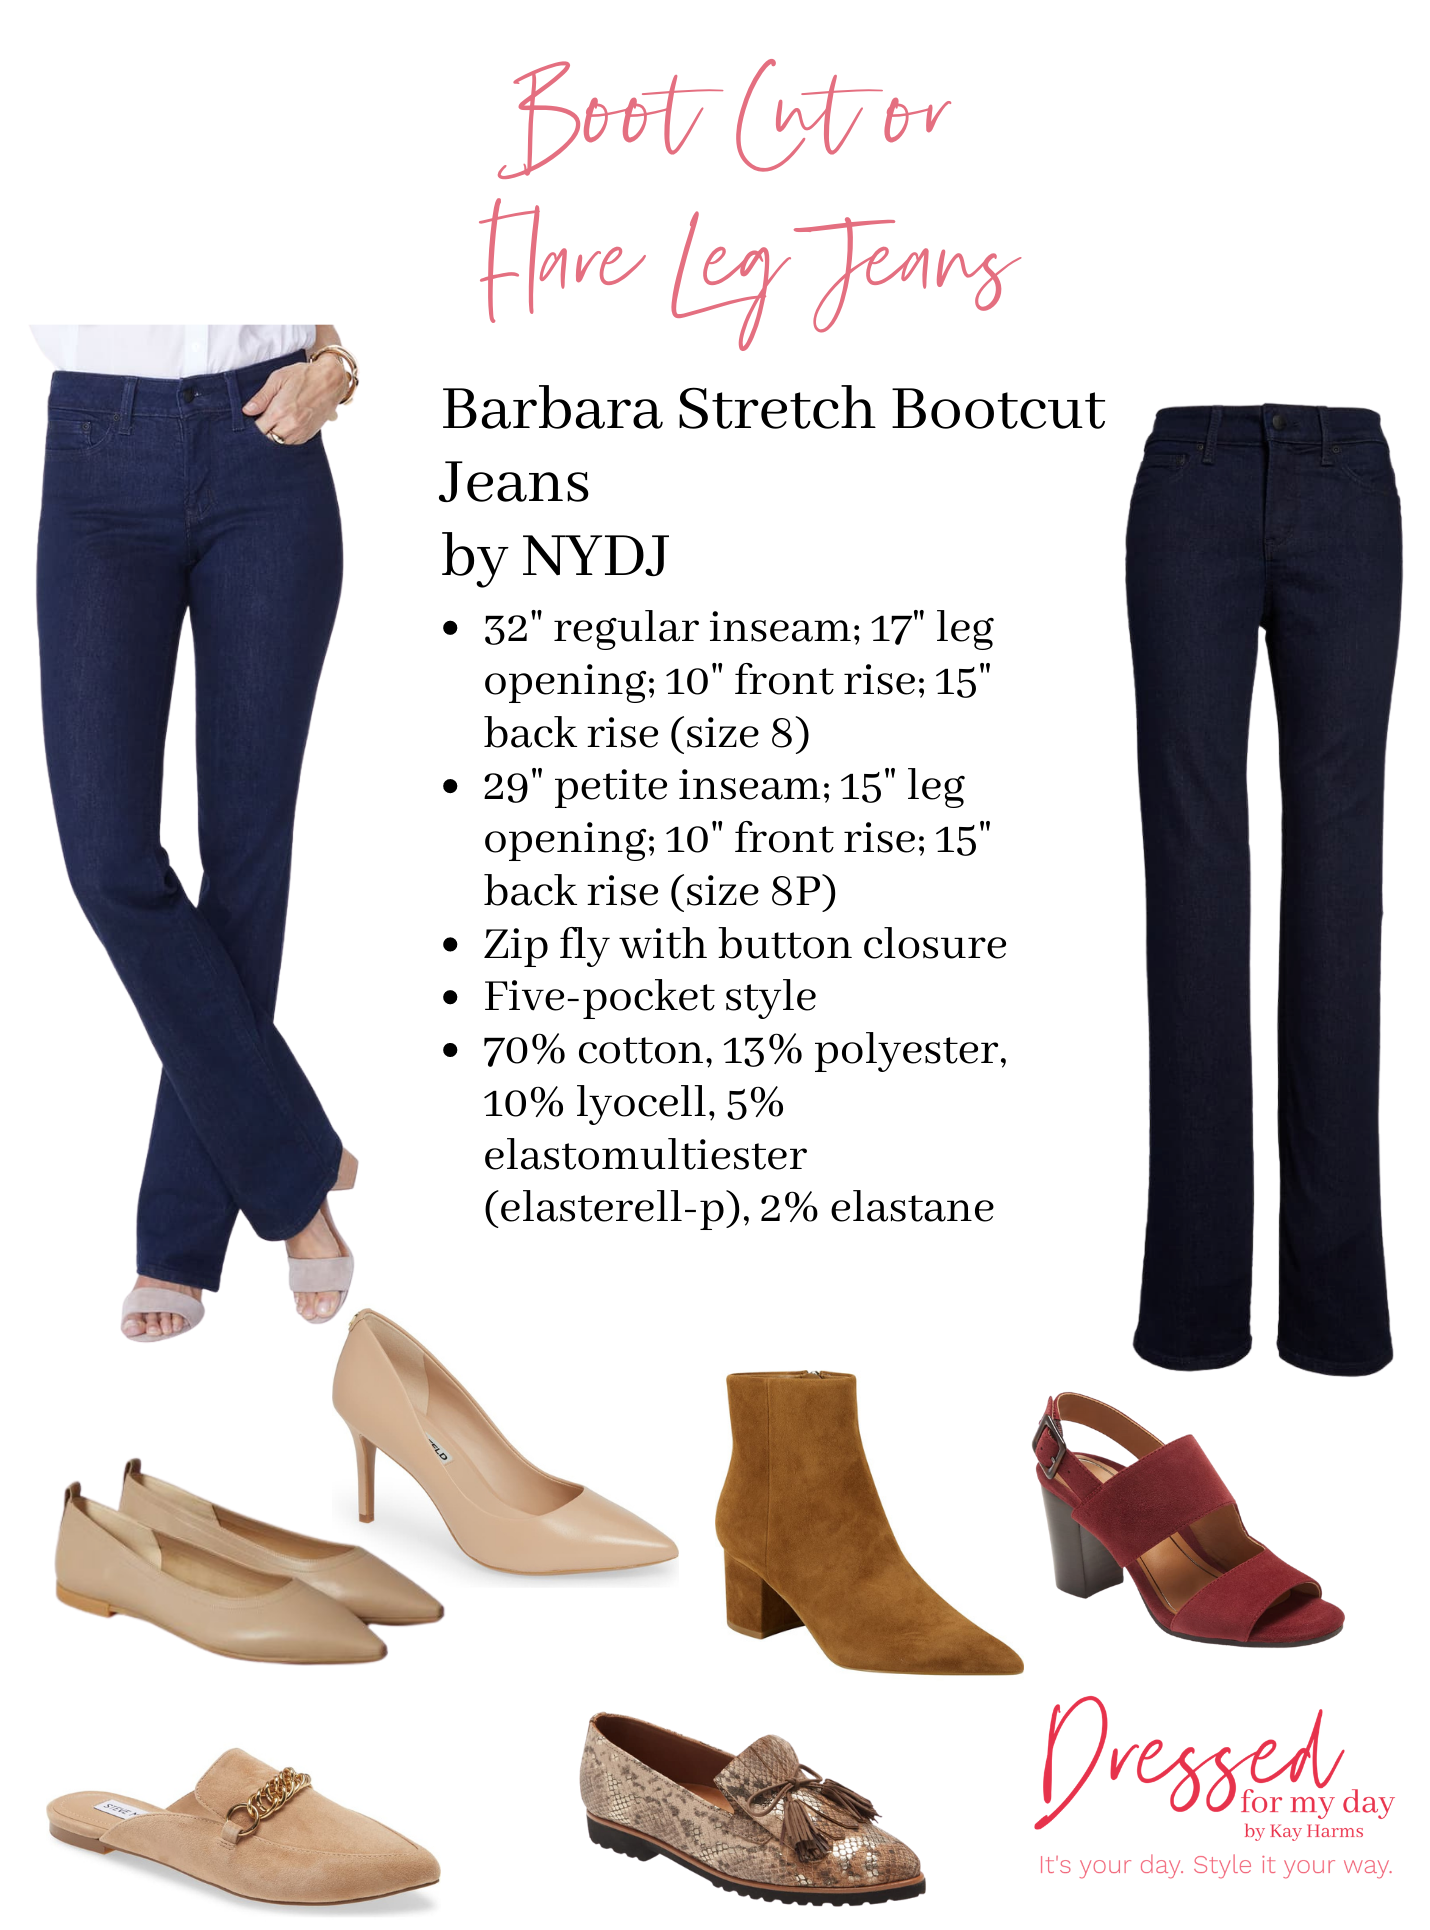 Shoes to Wear with Bootcut Jeans